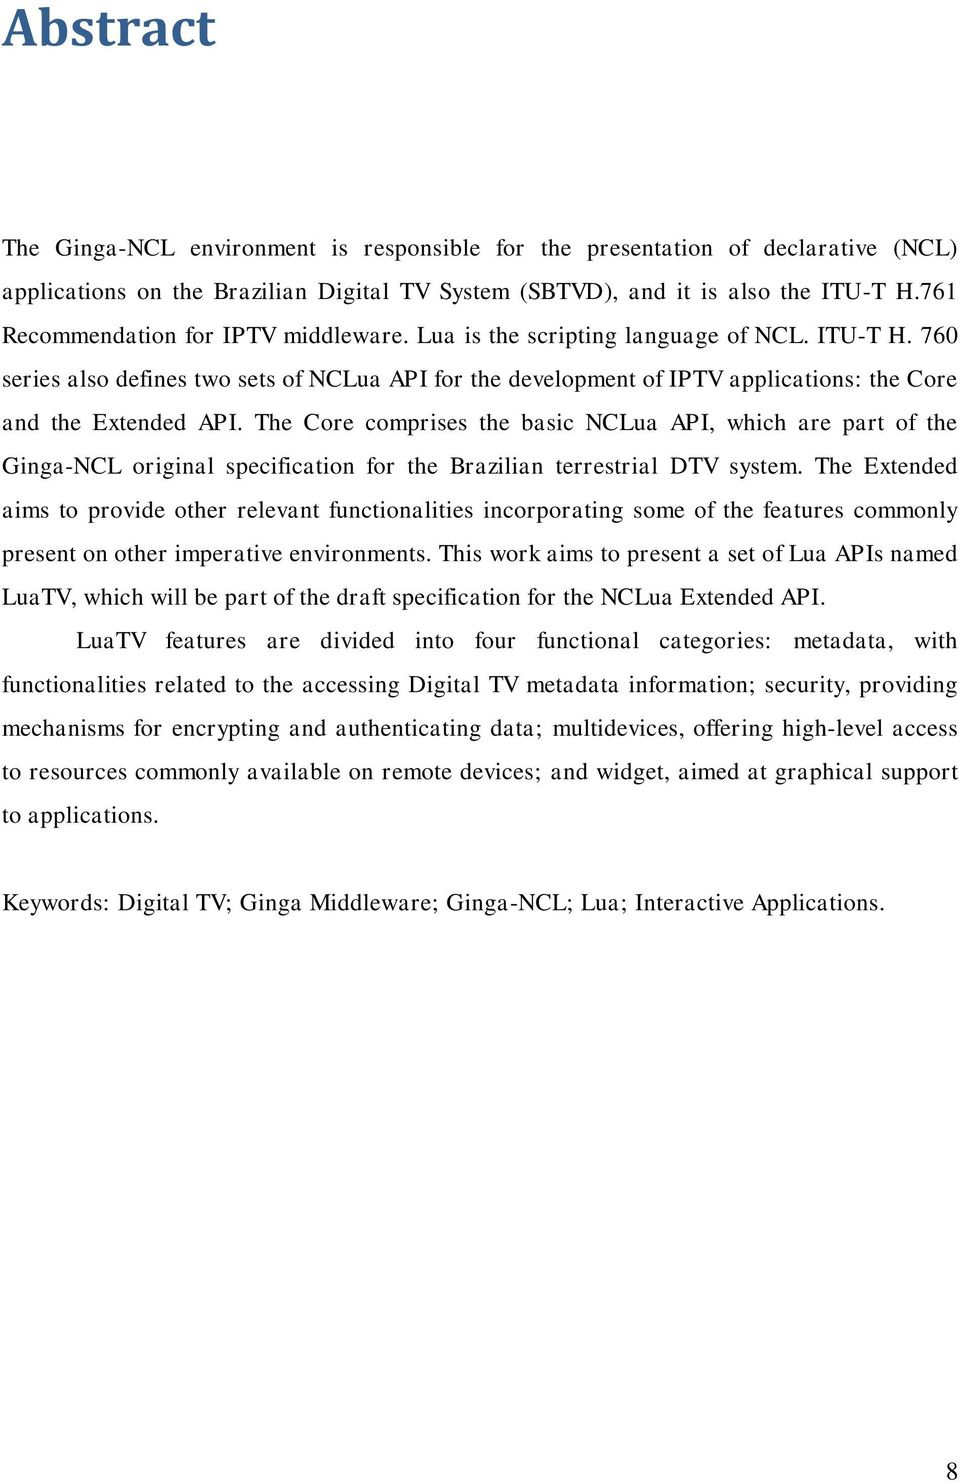 760 series also defines two sets of NCLua API for the development of IPTV applications: the Core and the Extended API.